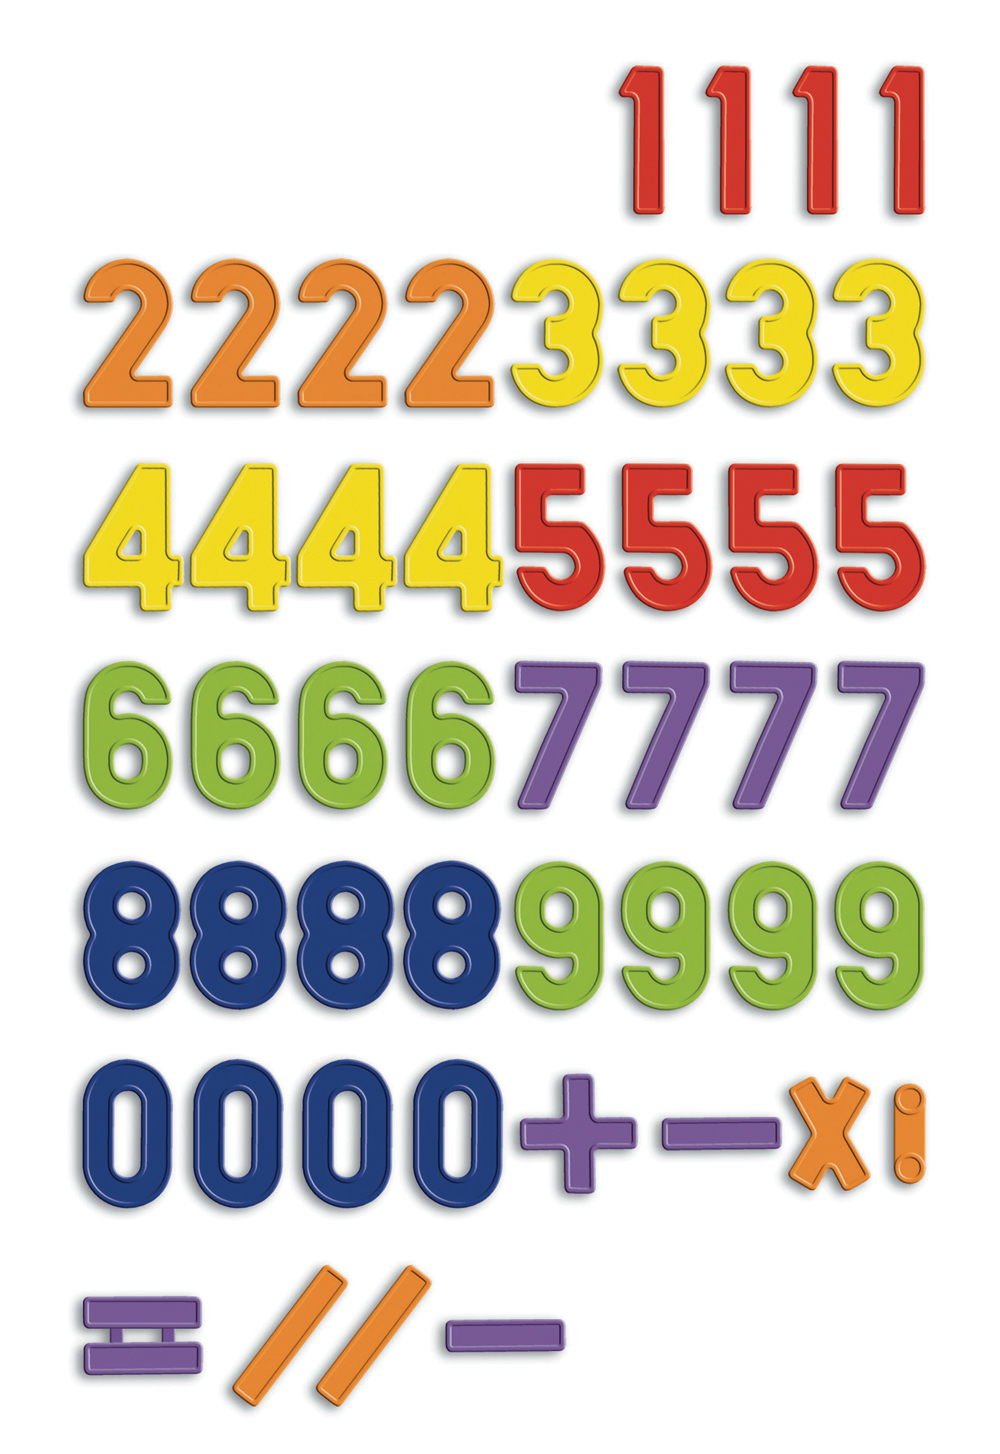 Magnetic Numbers picture